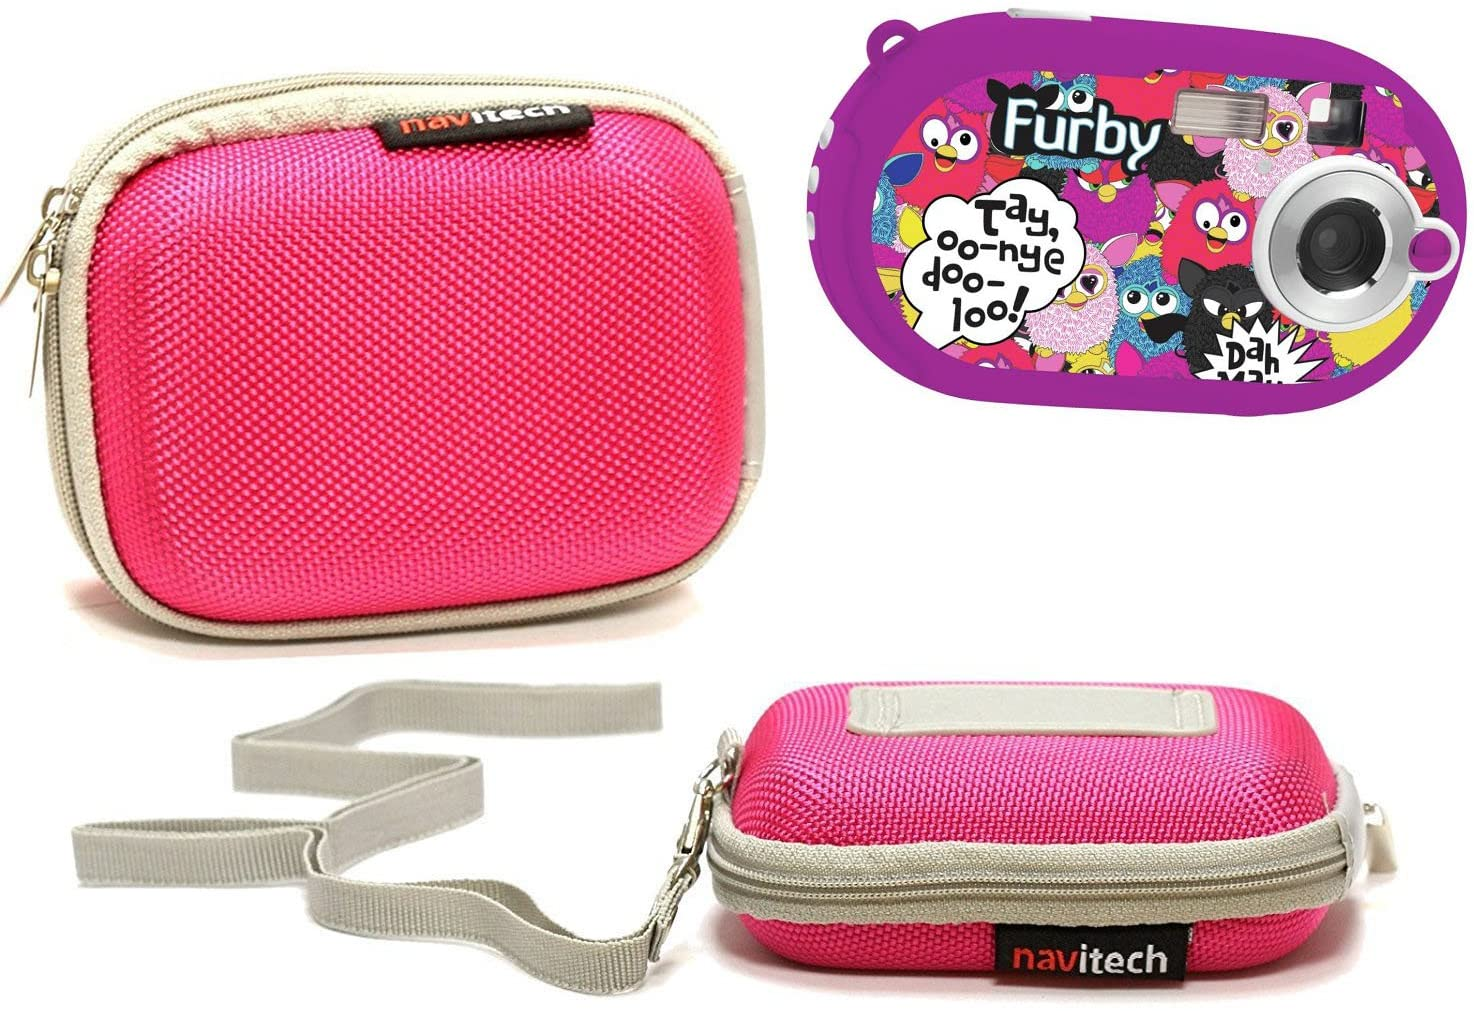 Navitech Pink Water Resistant Hard Camera Case Cover Compatible with The Furby 5MP Digital Camera